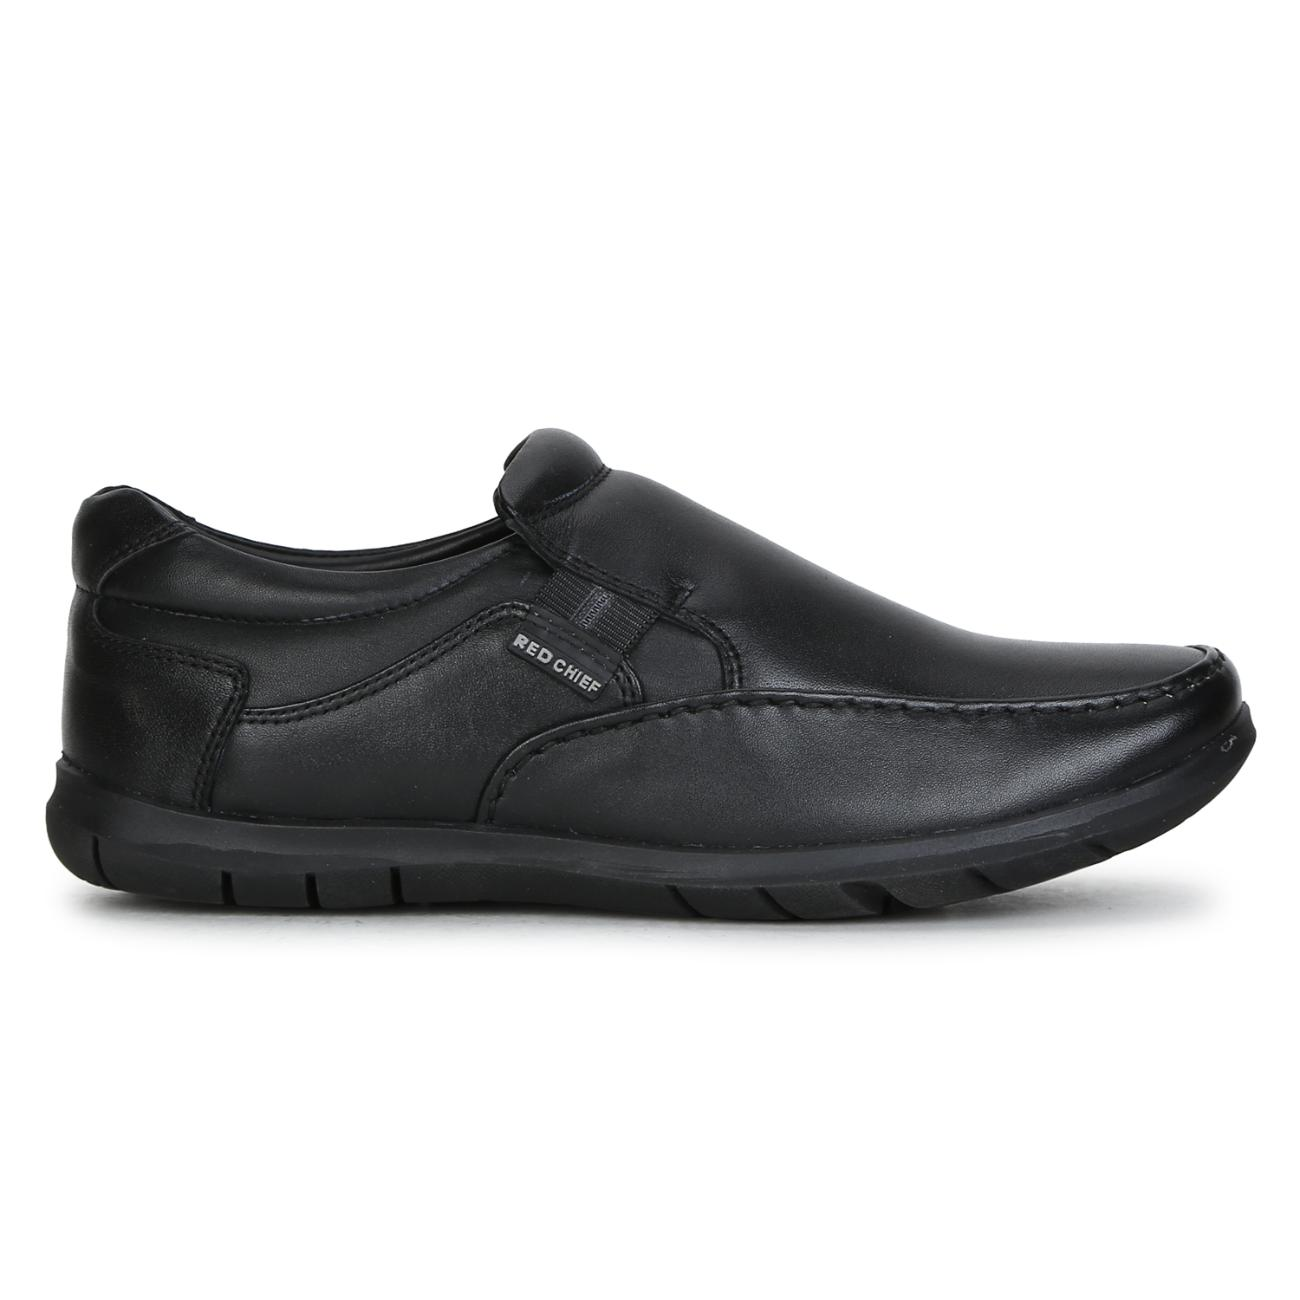 black leather slip-on formal shoes side view_2